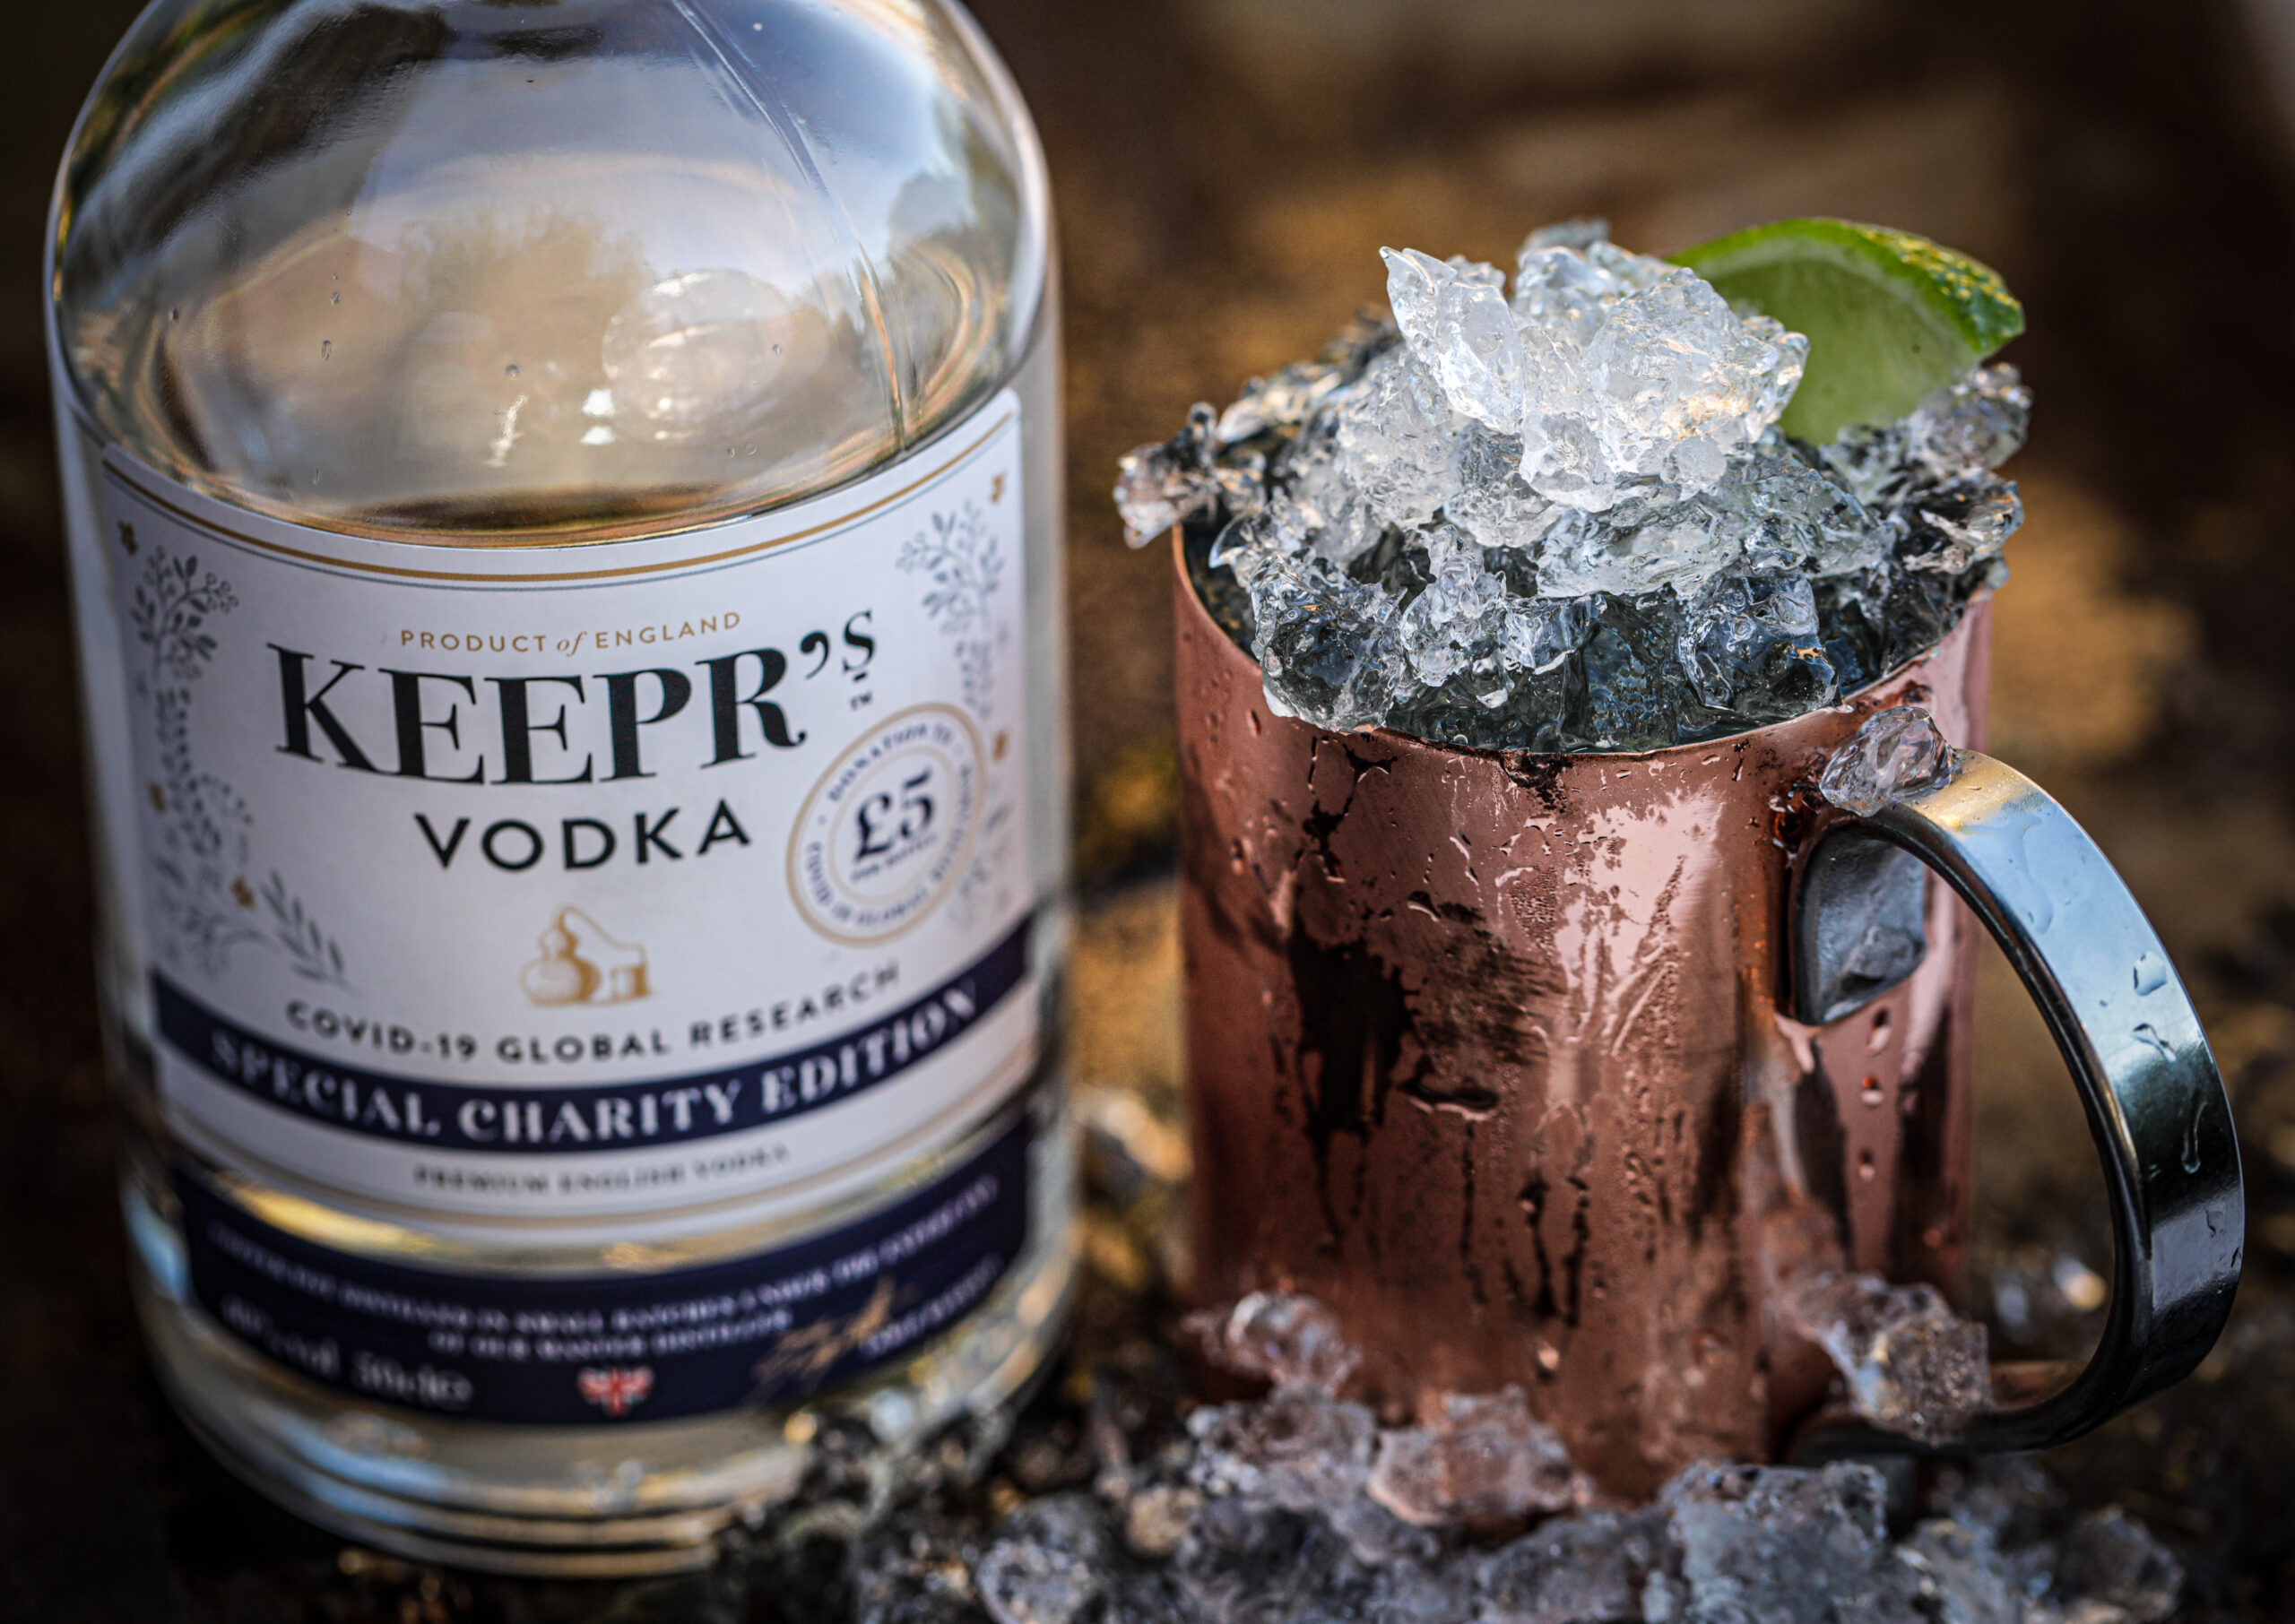 £5 from every bottle sold of Keeprs' Special Charity Edition Vodka will go to Covid-19 global research